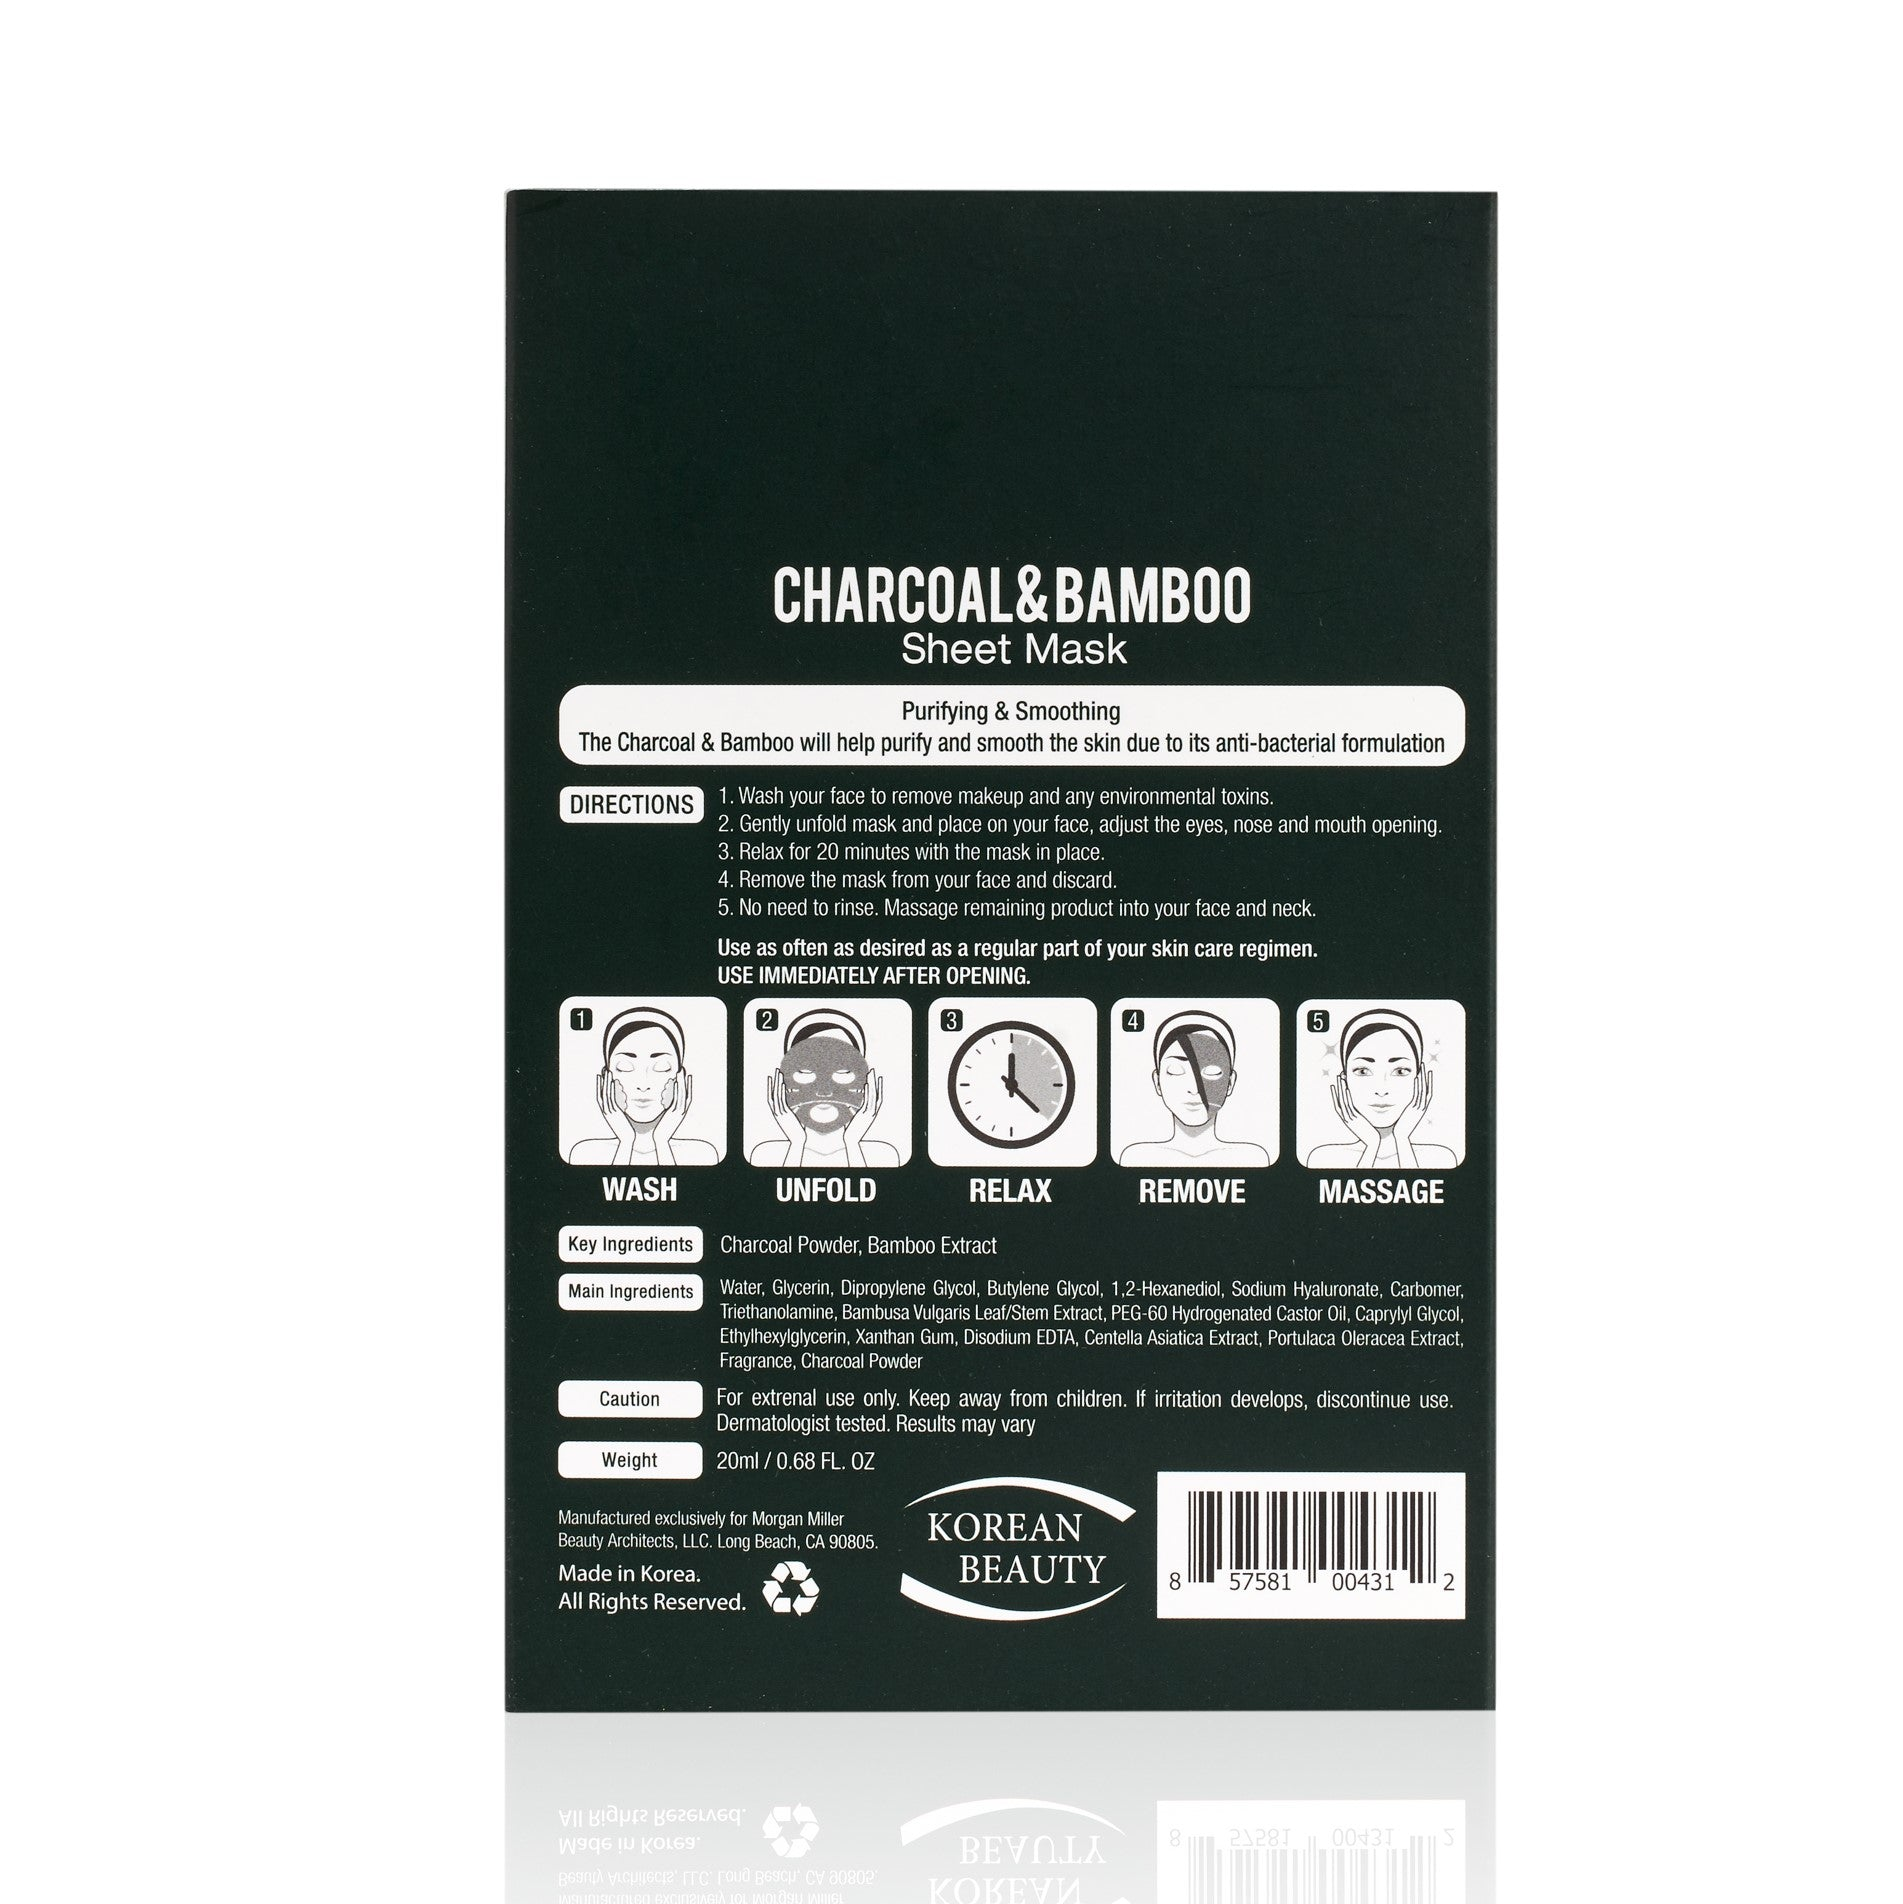 Charcoal & Bamboo Sheet Mask